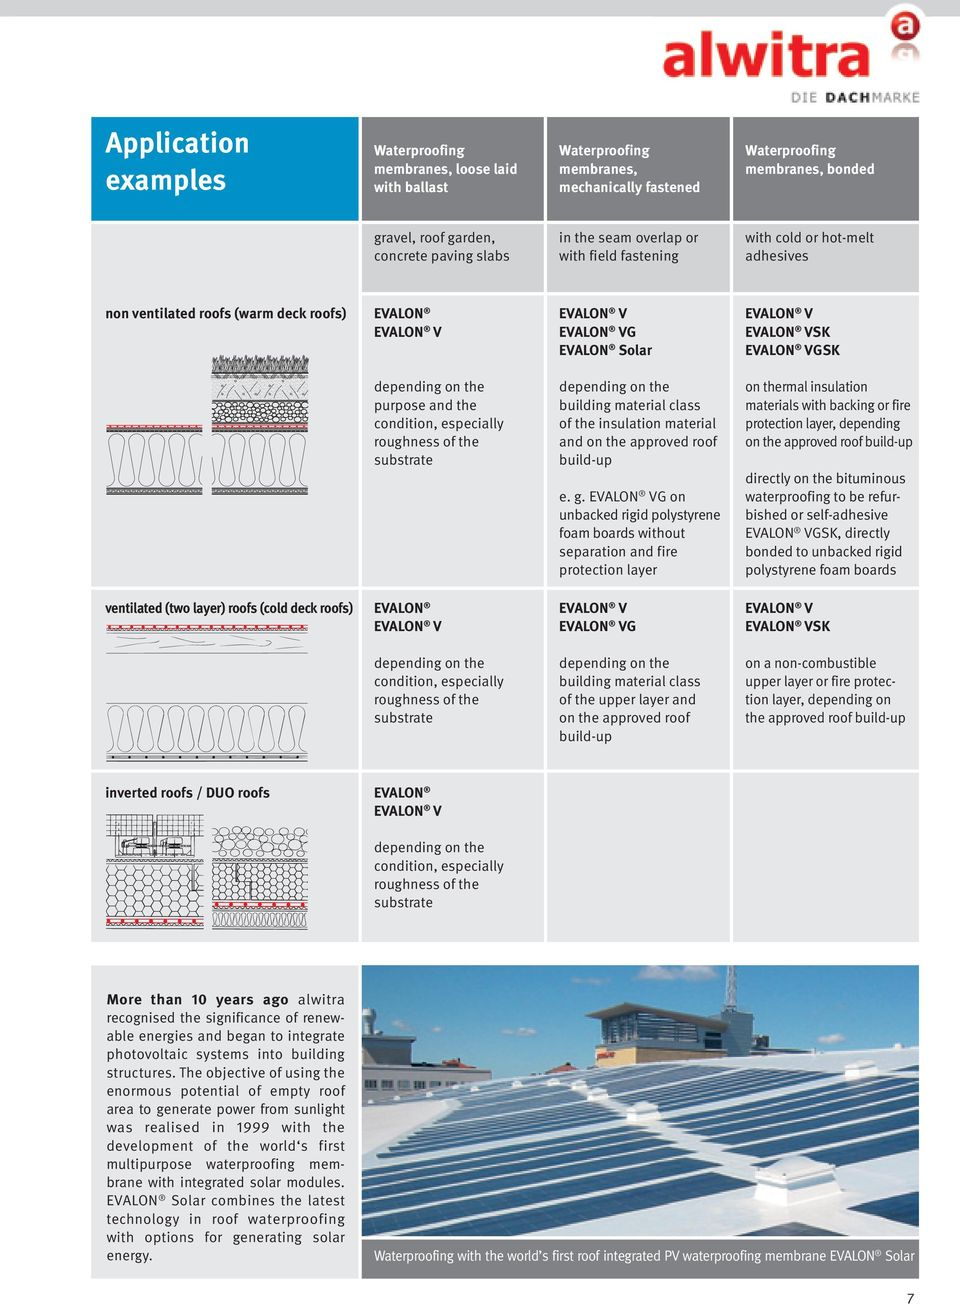 substrate ventilated (two layer) roofs (cold deck roofs) EVALON EVALON V depending on the condition, especially roughness of the substrate EVALON V EVALON VG EVALON Solar depending on the building